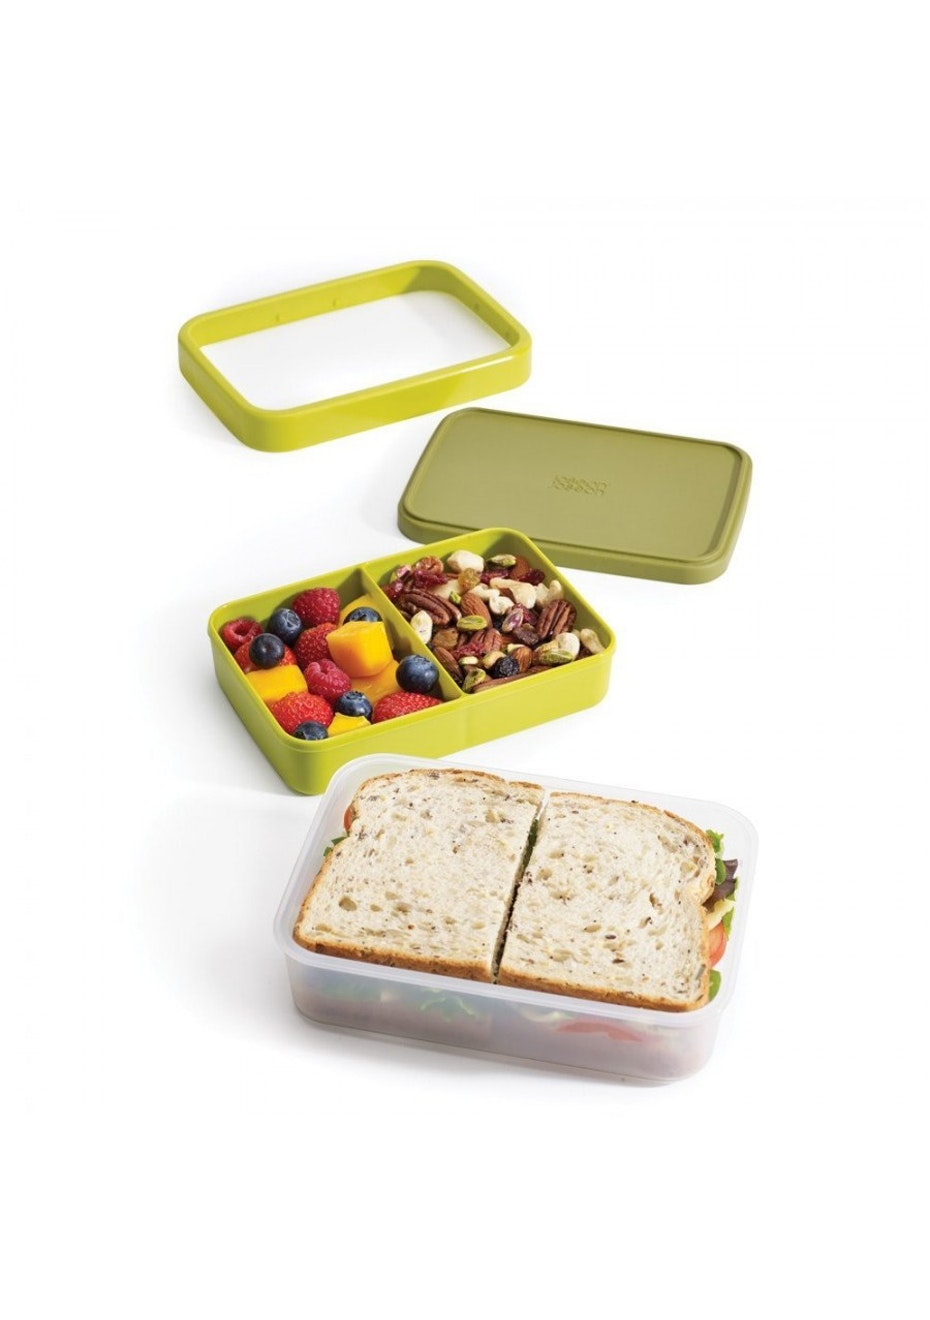 Joseph Joseph - GoEat Compact 2-in-1 lunch box - Green